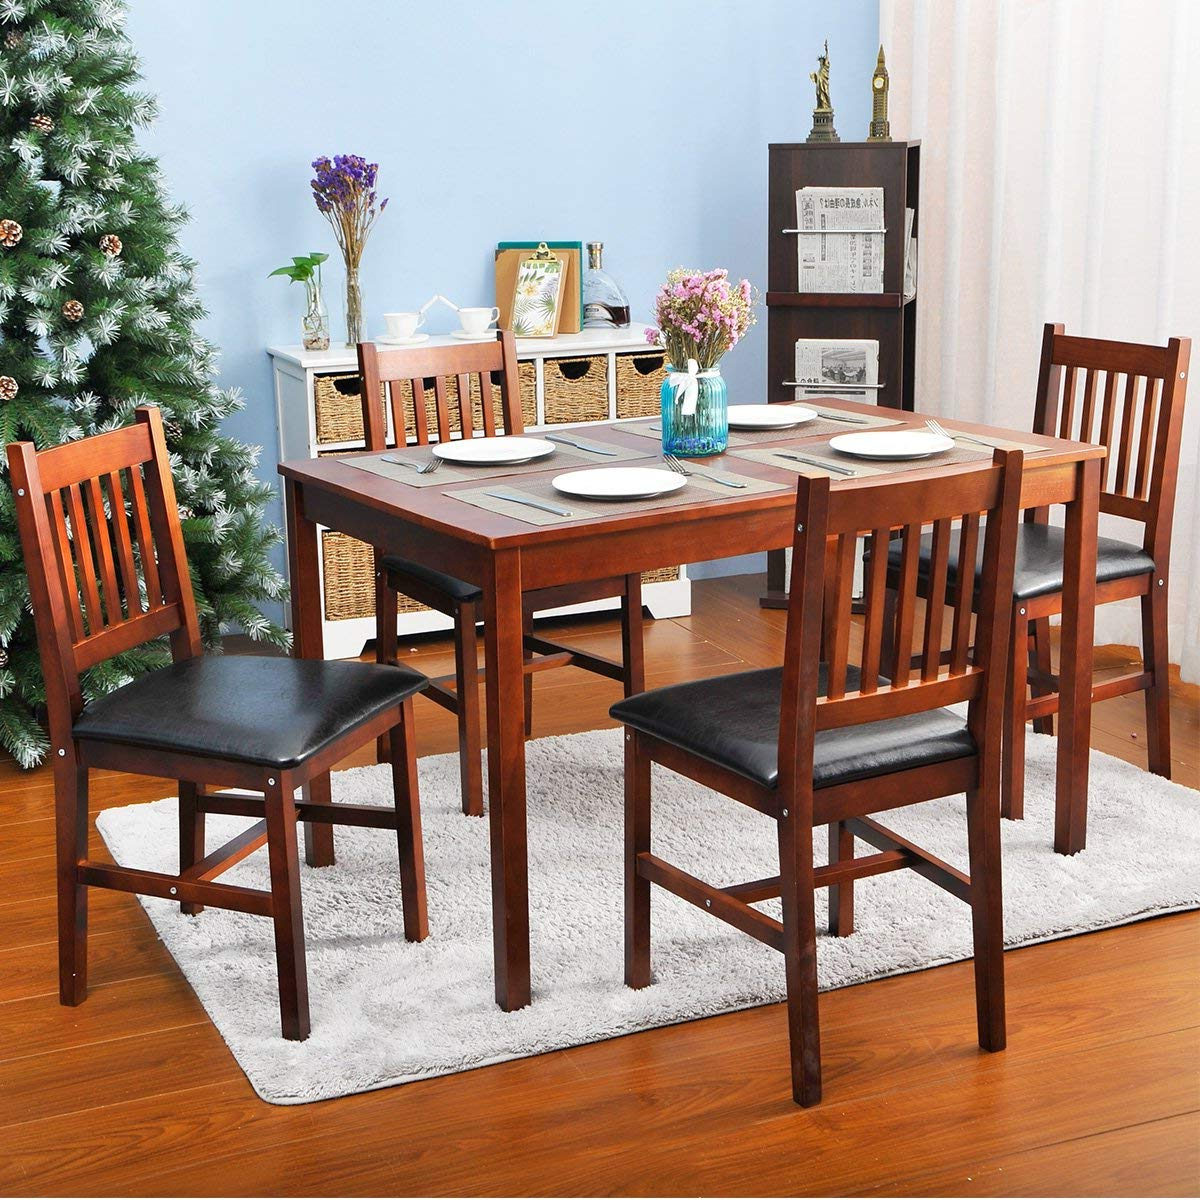 Best And Newest Dining Table Chair Set & Simple Living Olin Dining Sets Sc 1 St Intended For Kieffer 5 Piece Dining Sets (View 12 of 25)